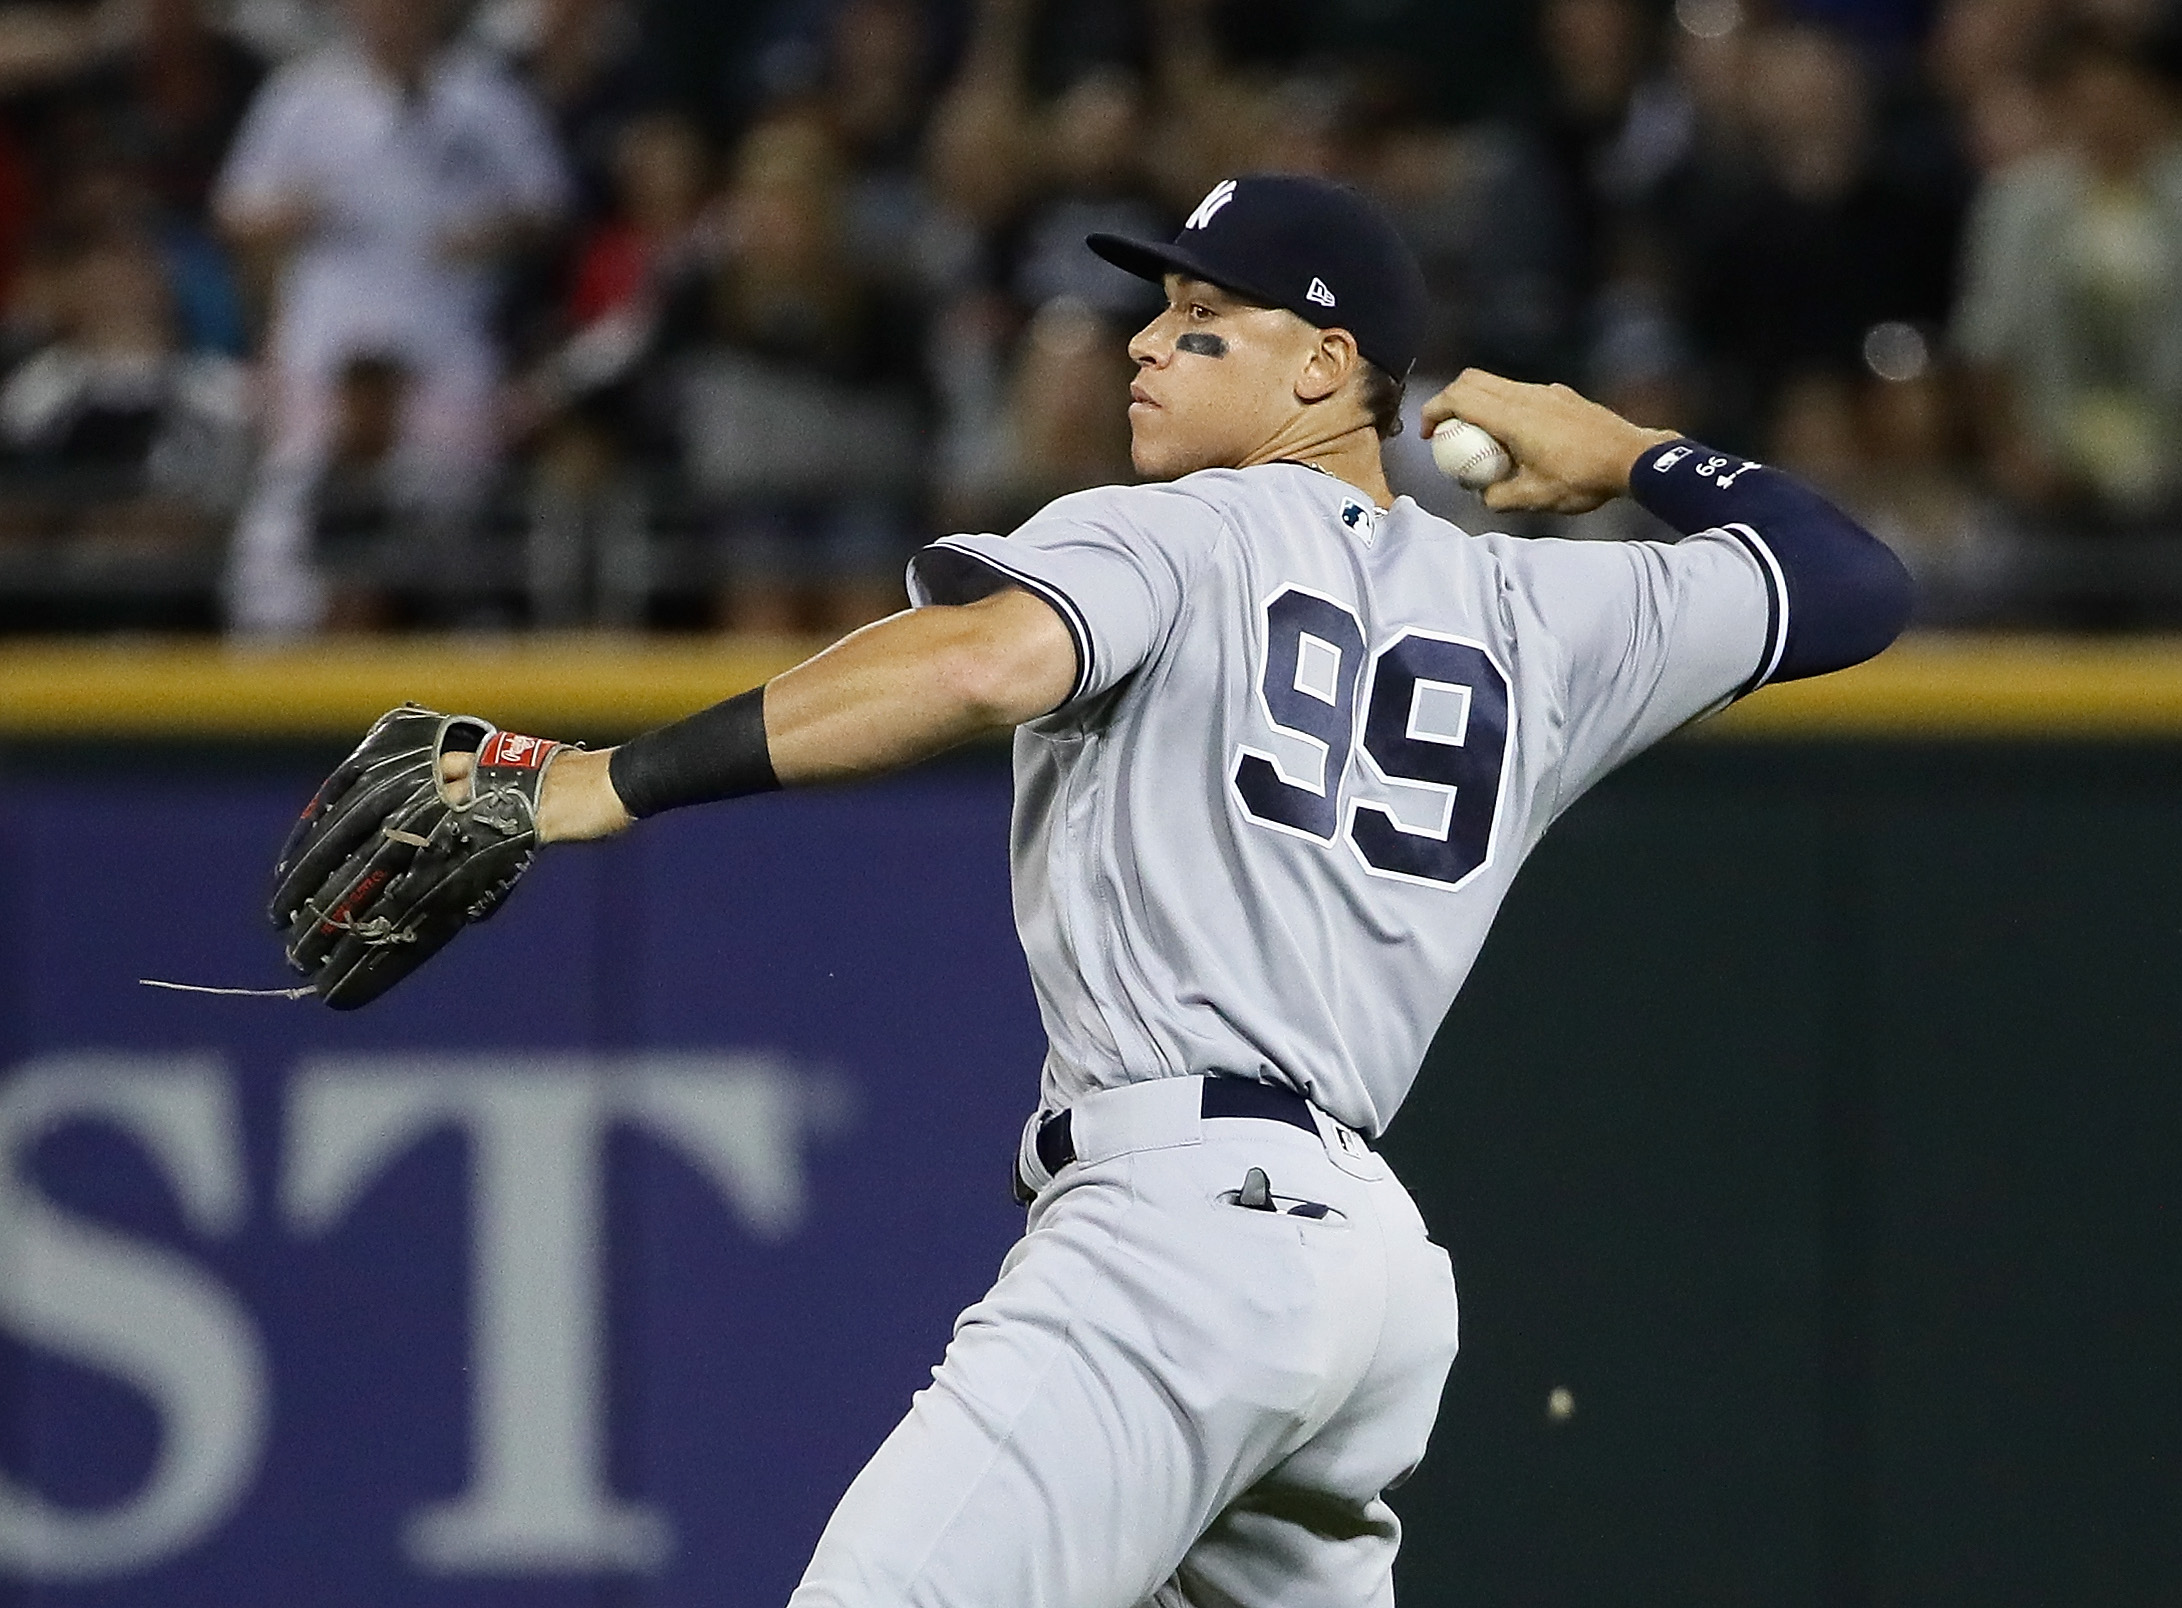 Five New York Yankees Selected to All-Star Game